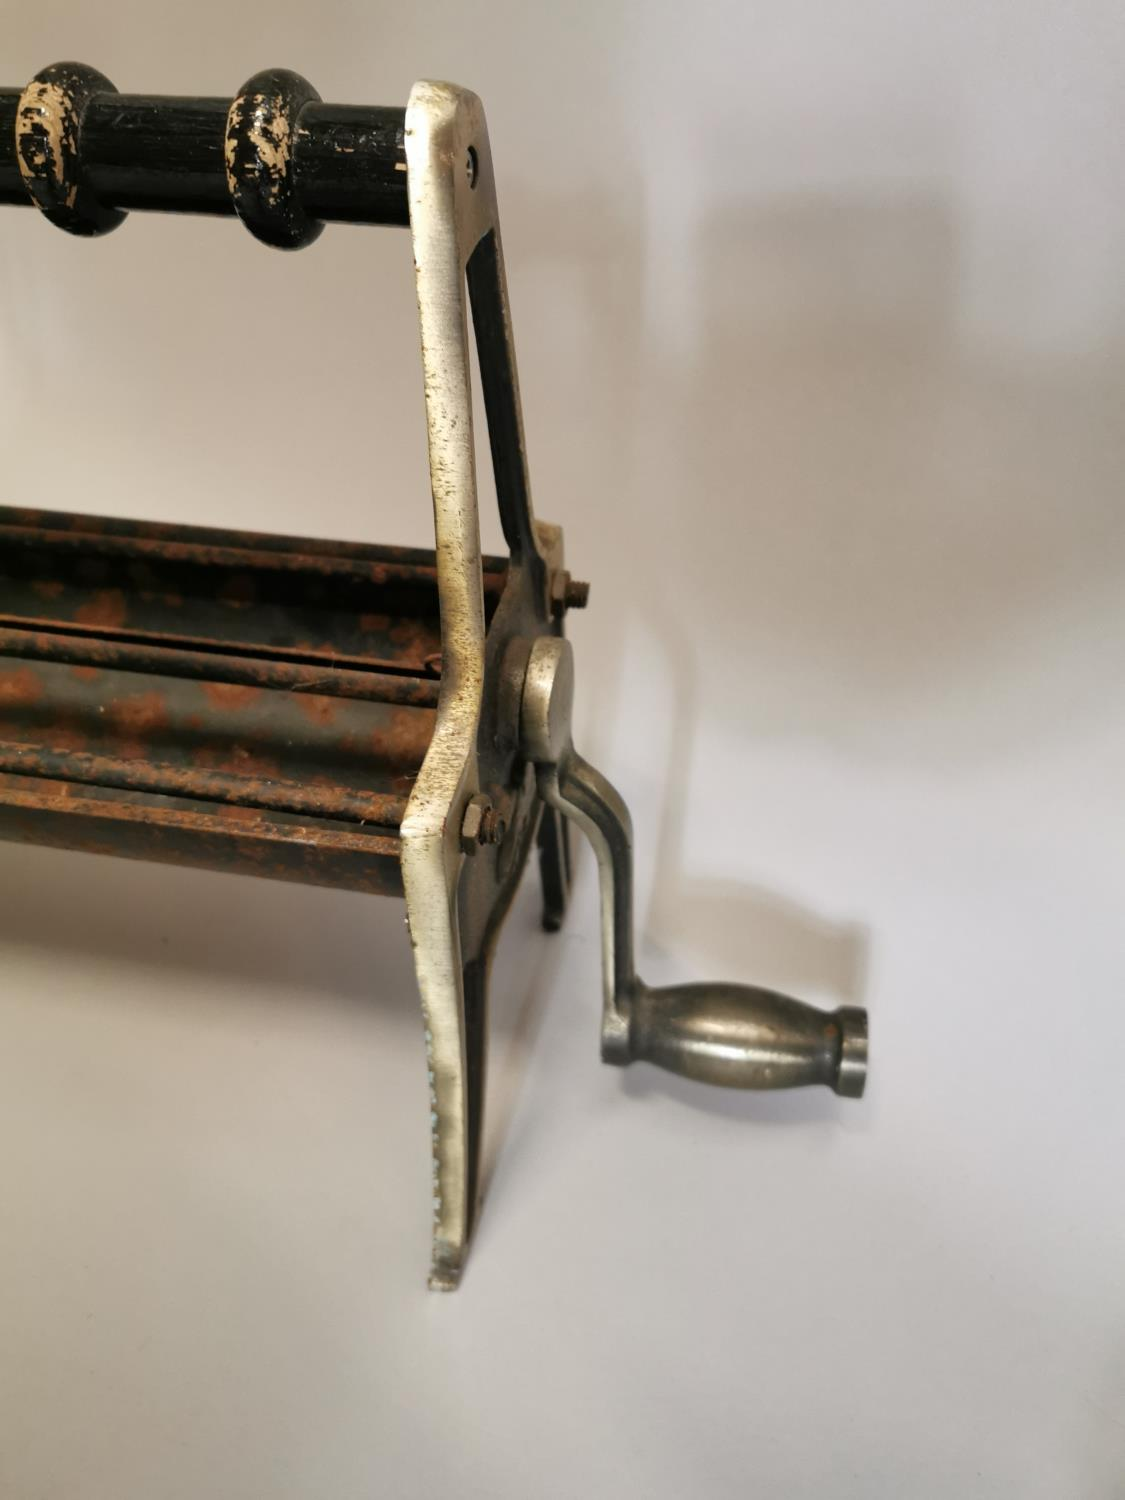 Early 20th. C. brass and metal paper roll holder. - Image 2 of 3